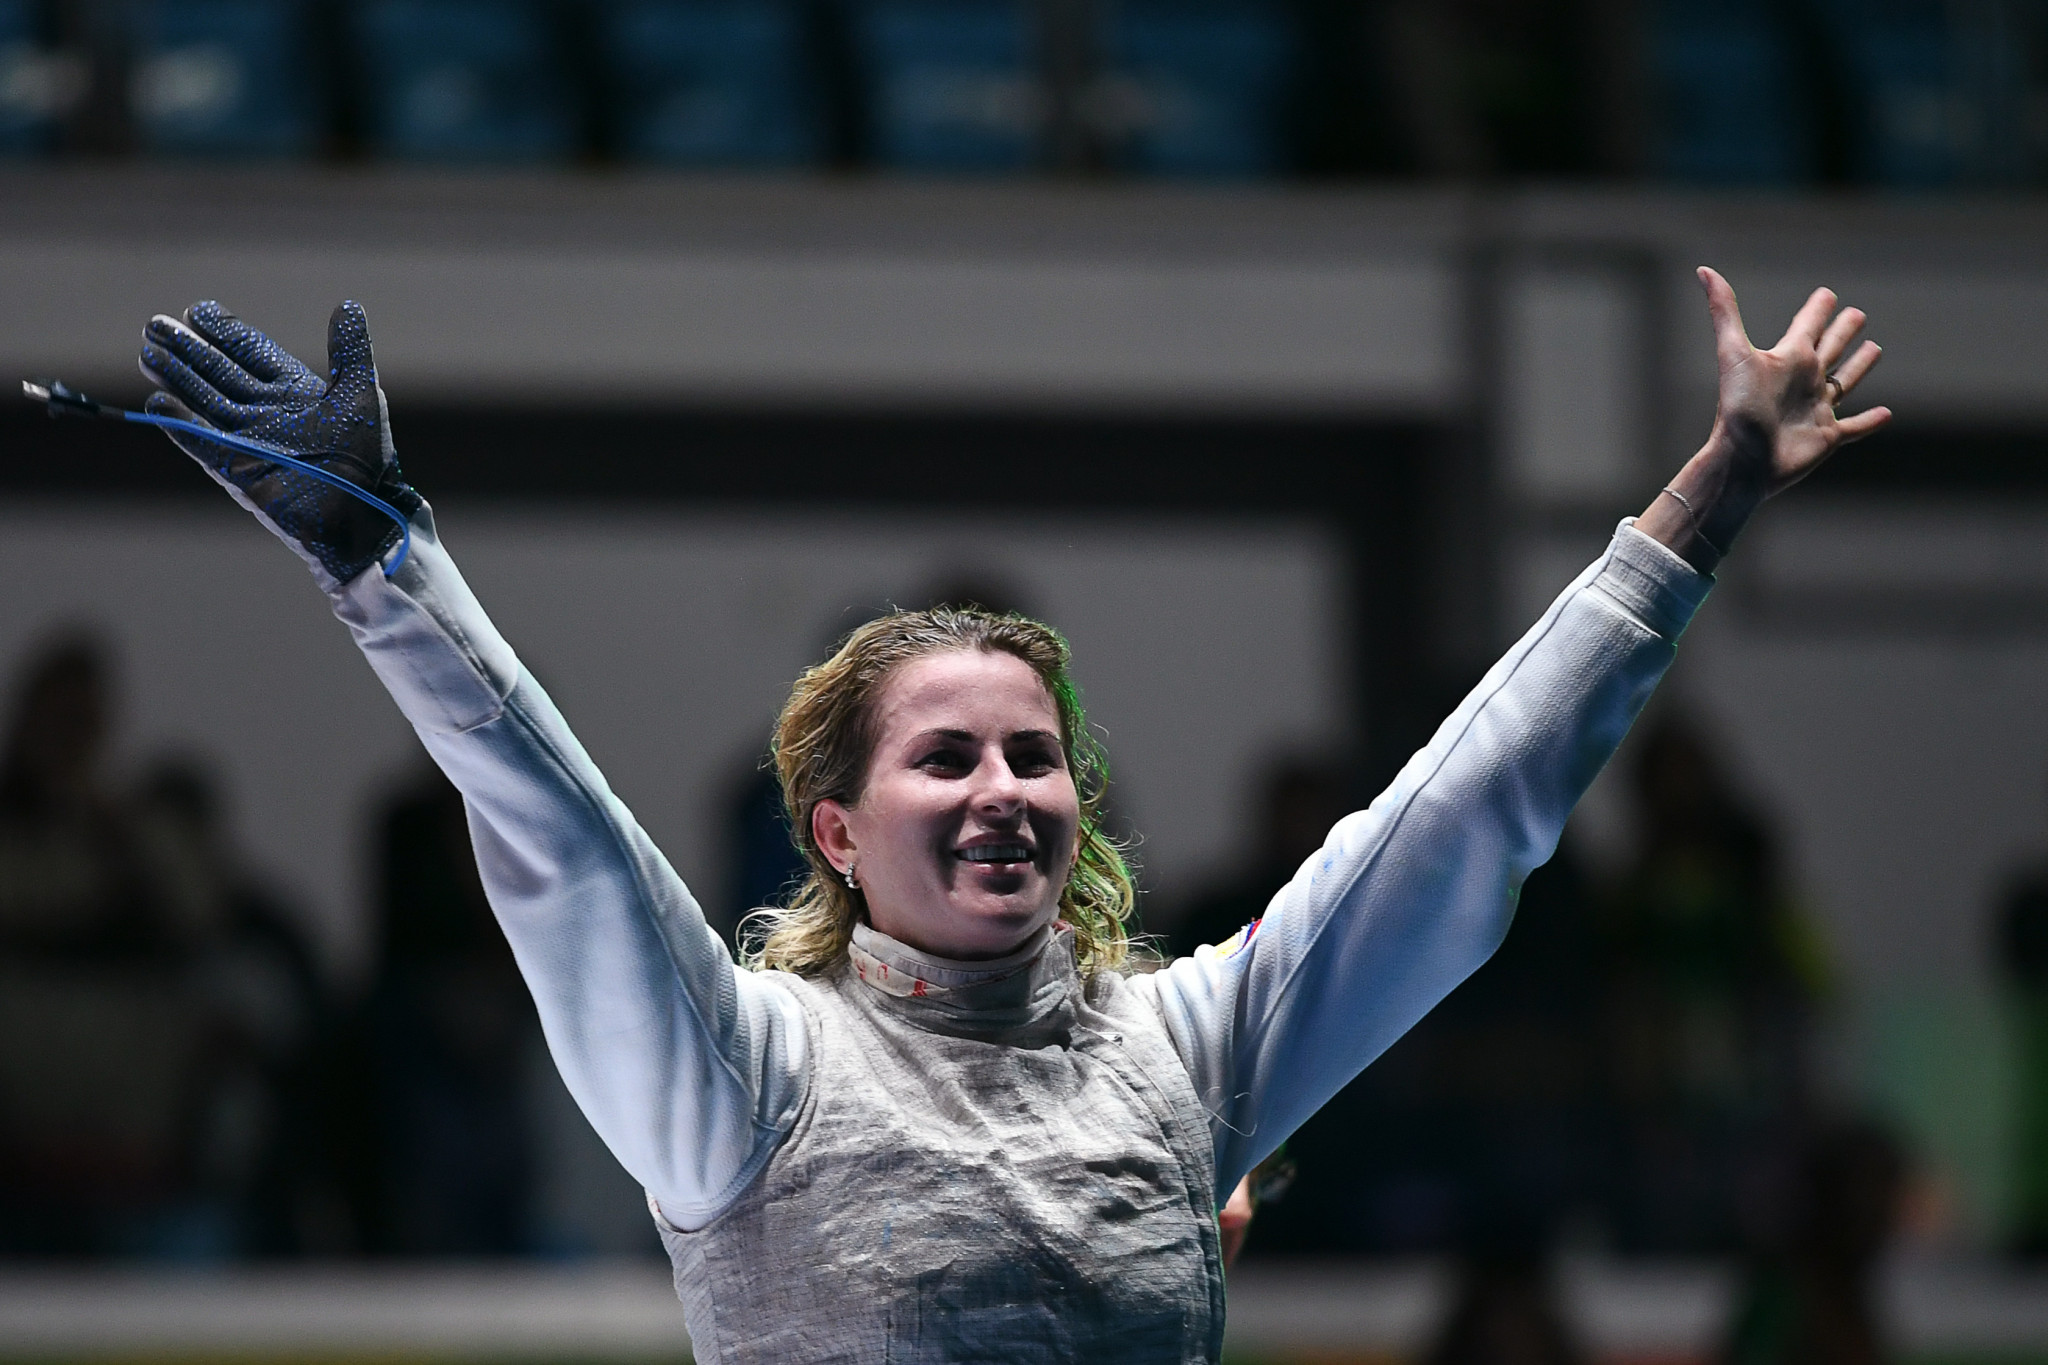 Italy's Di Francisca wins FIE Women's Foil World Cup in Algiers